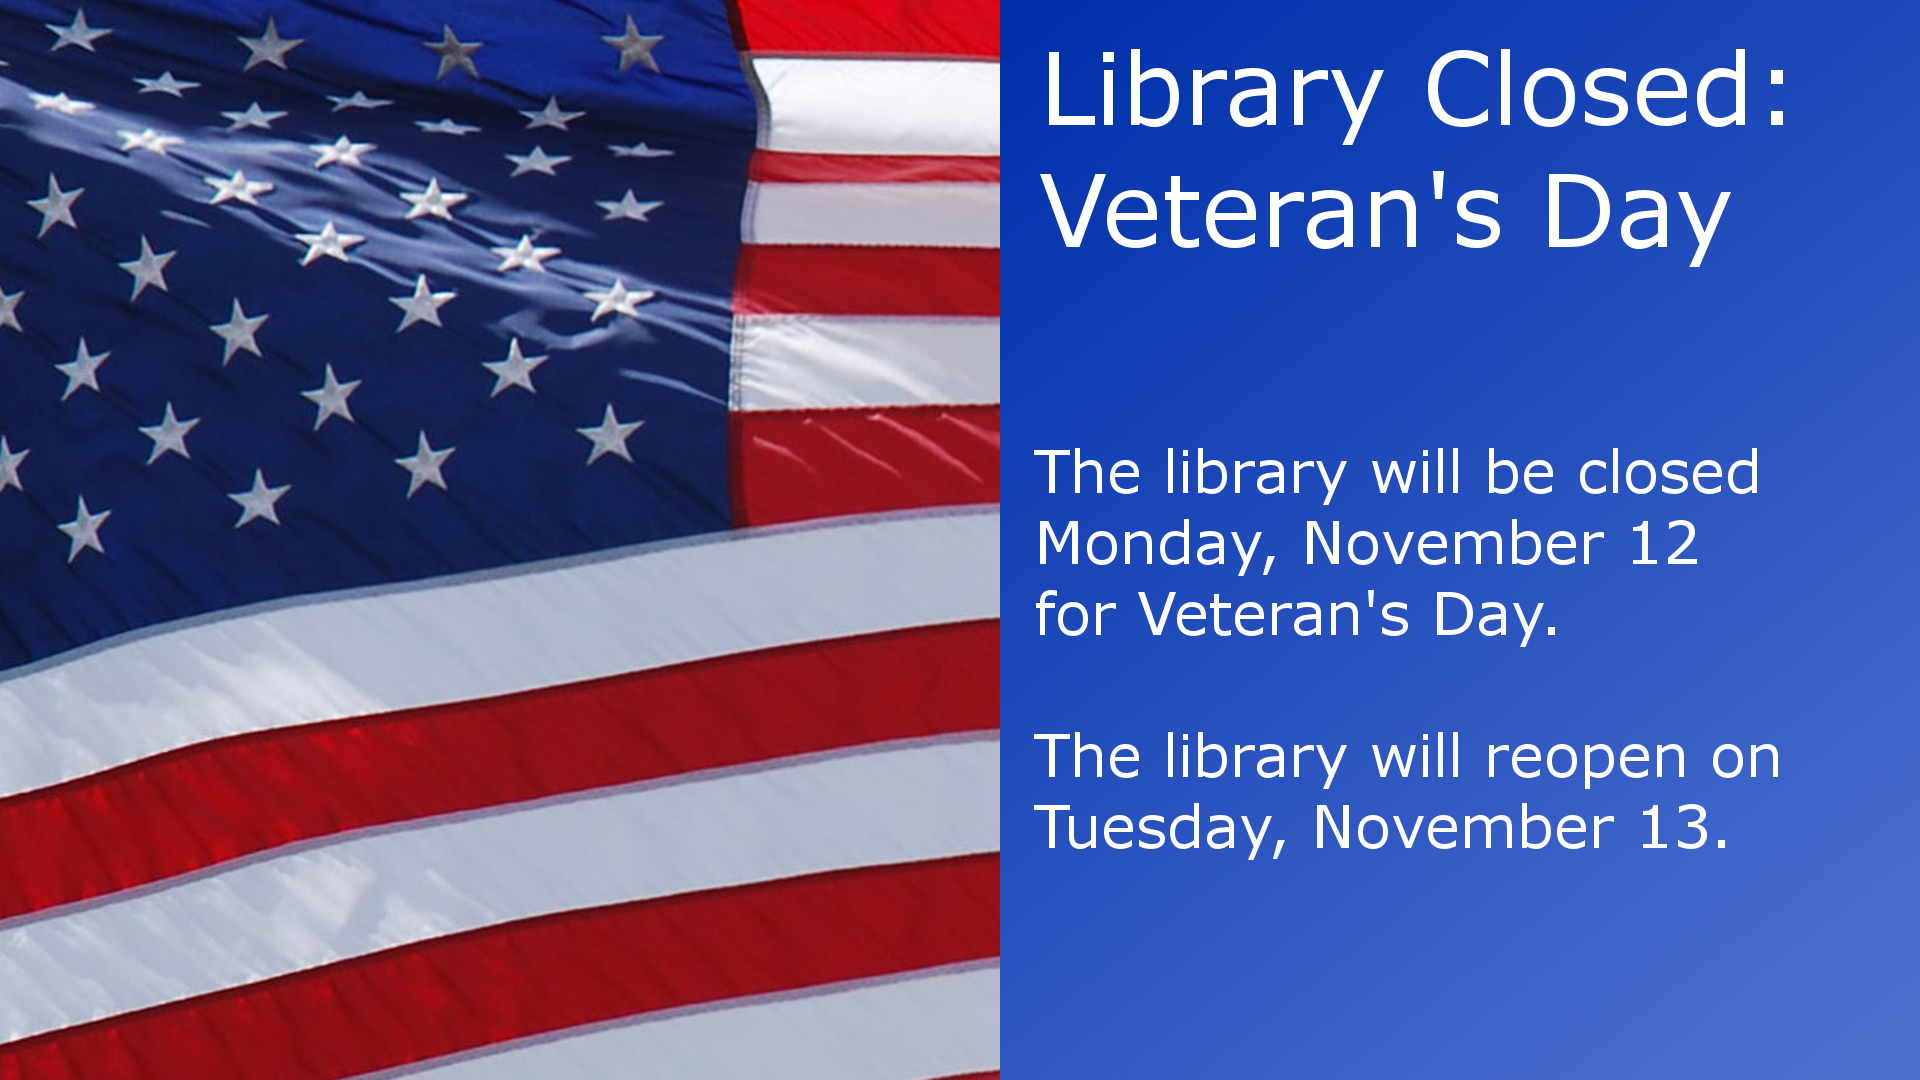 The library will be closed on Monday, November 12 for Veterans Day. The library will reopen on Tuesday, November 13.